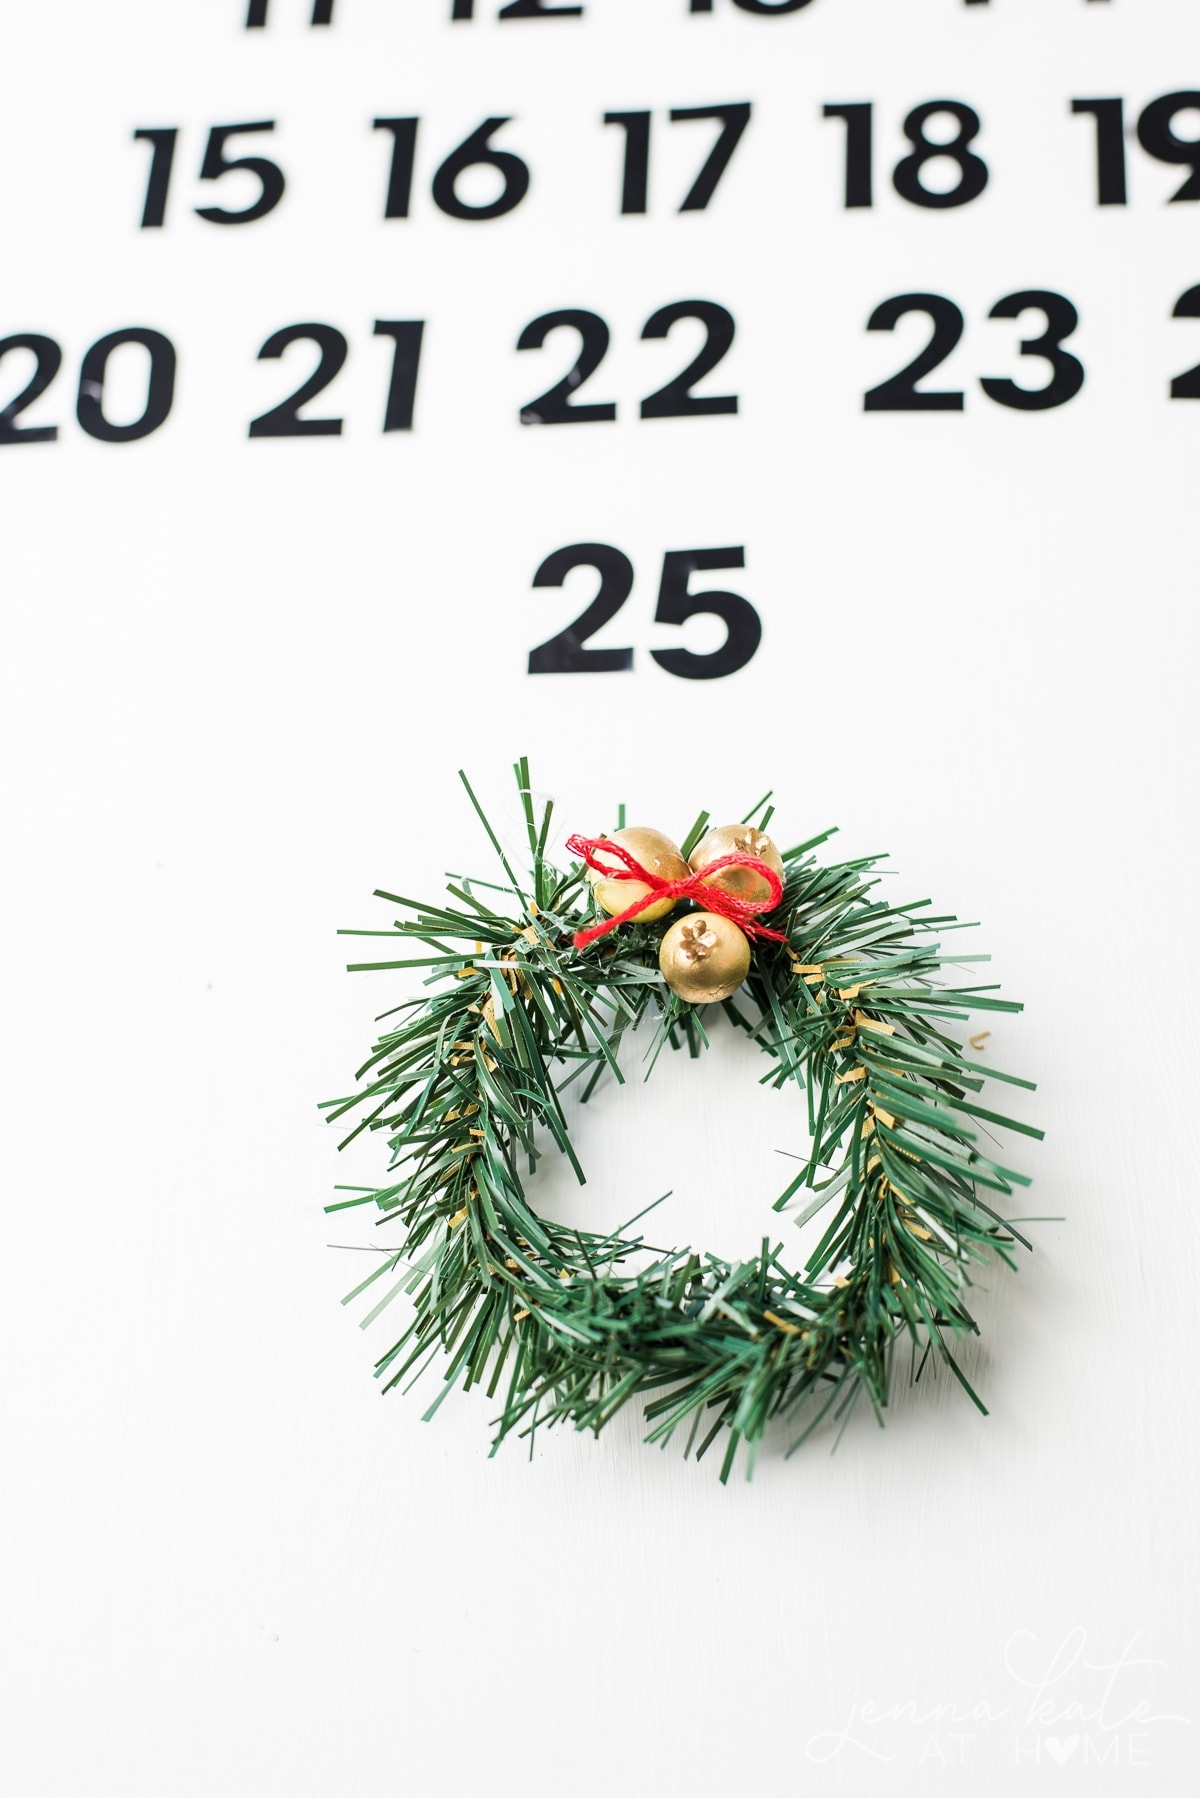 This adorable mini wreath will mark the days on your DIY wooden advent calendar